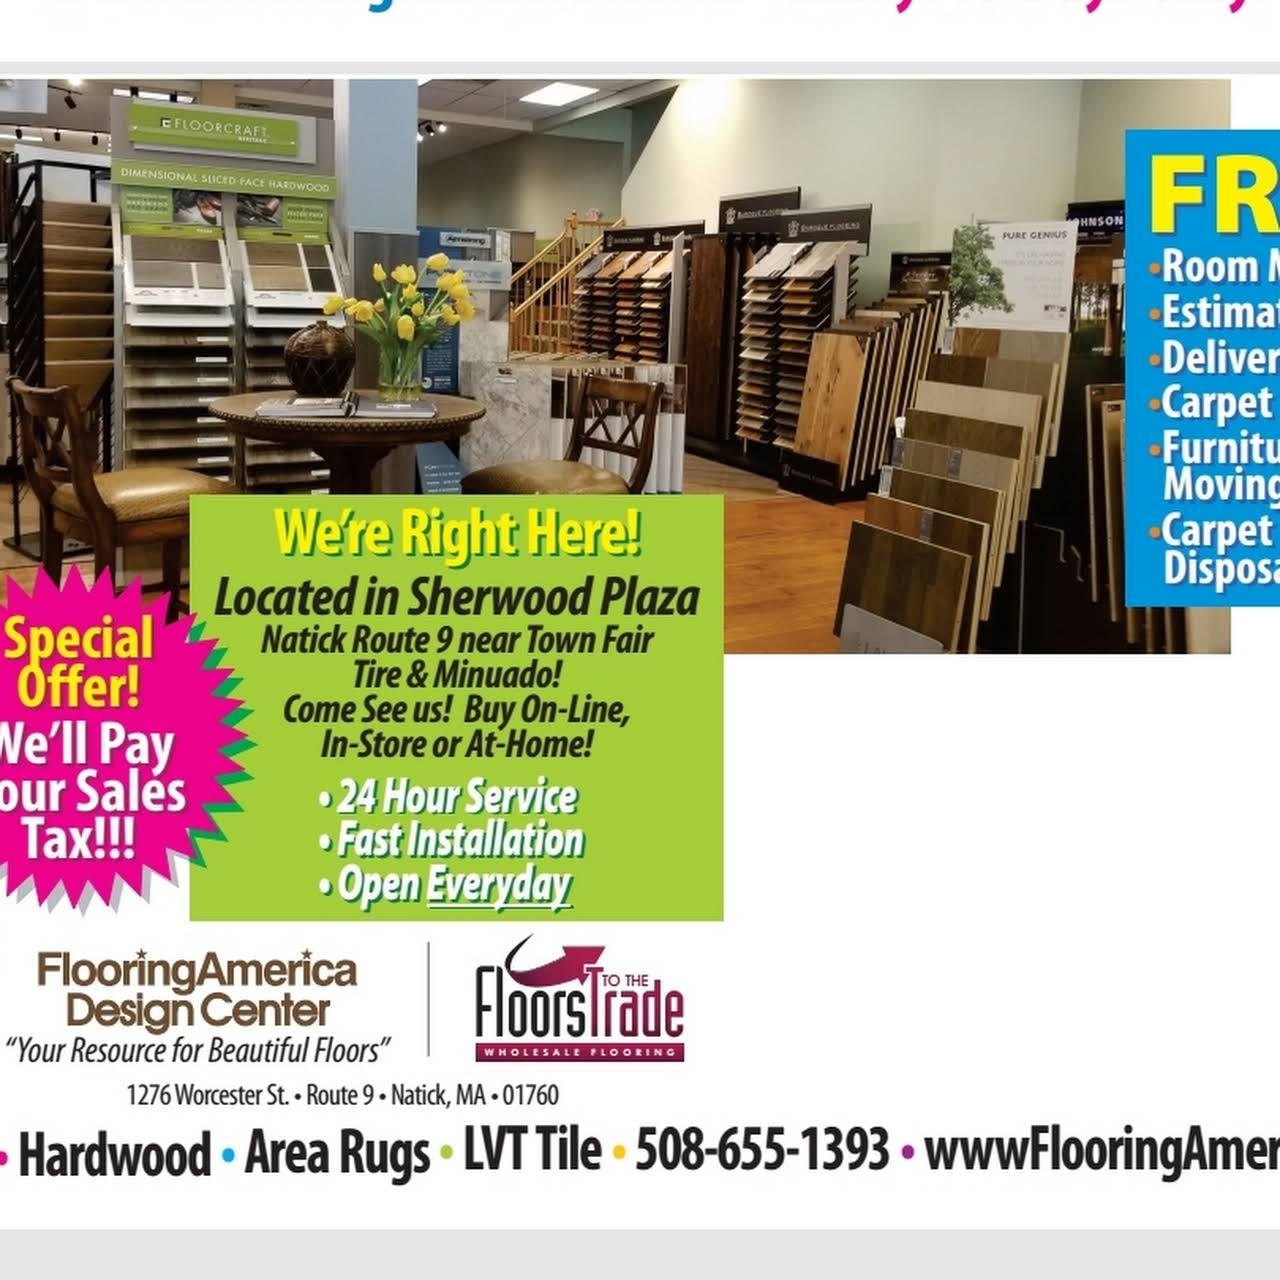 Flooring America Design Center - FLOORING SHOWROOM IN NATICK MA